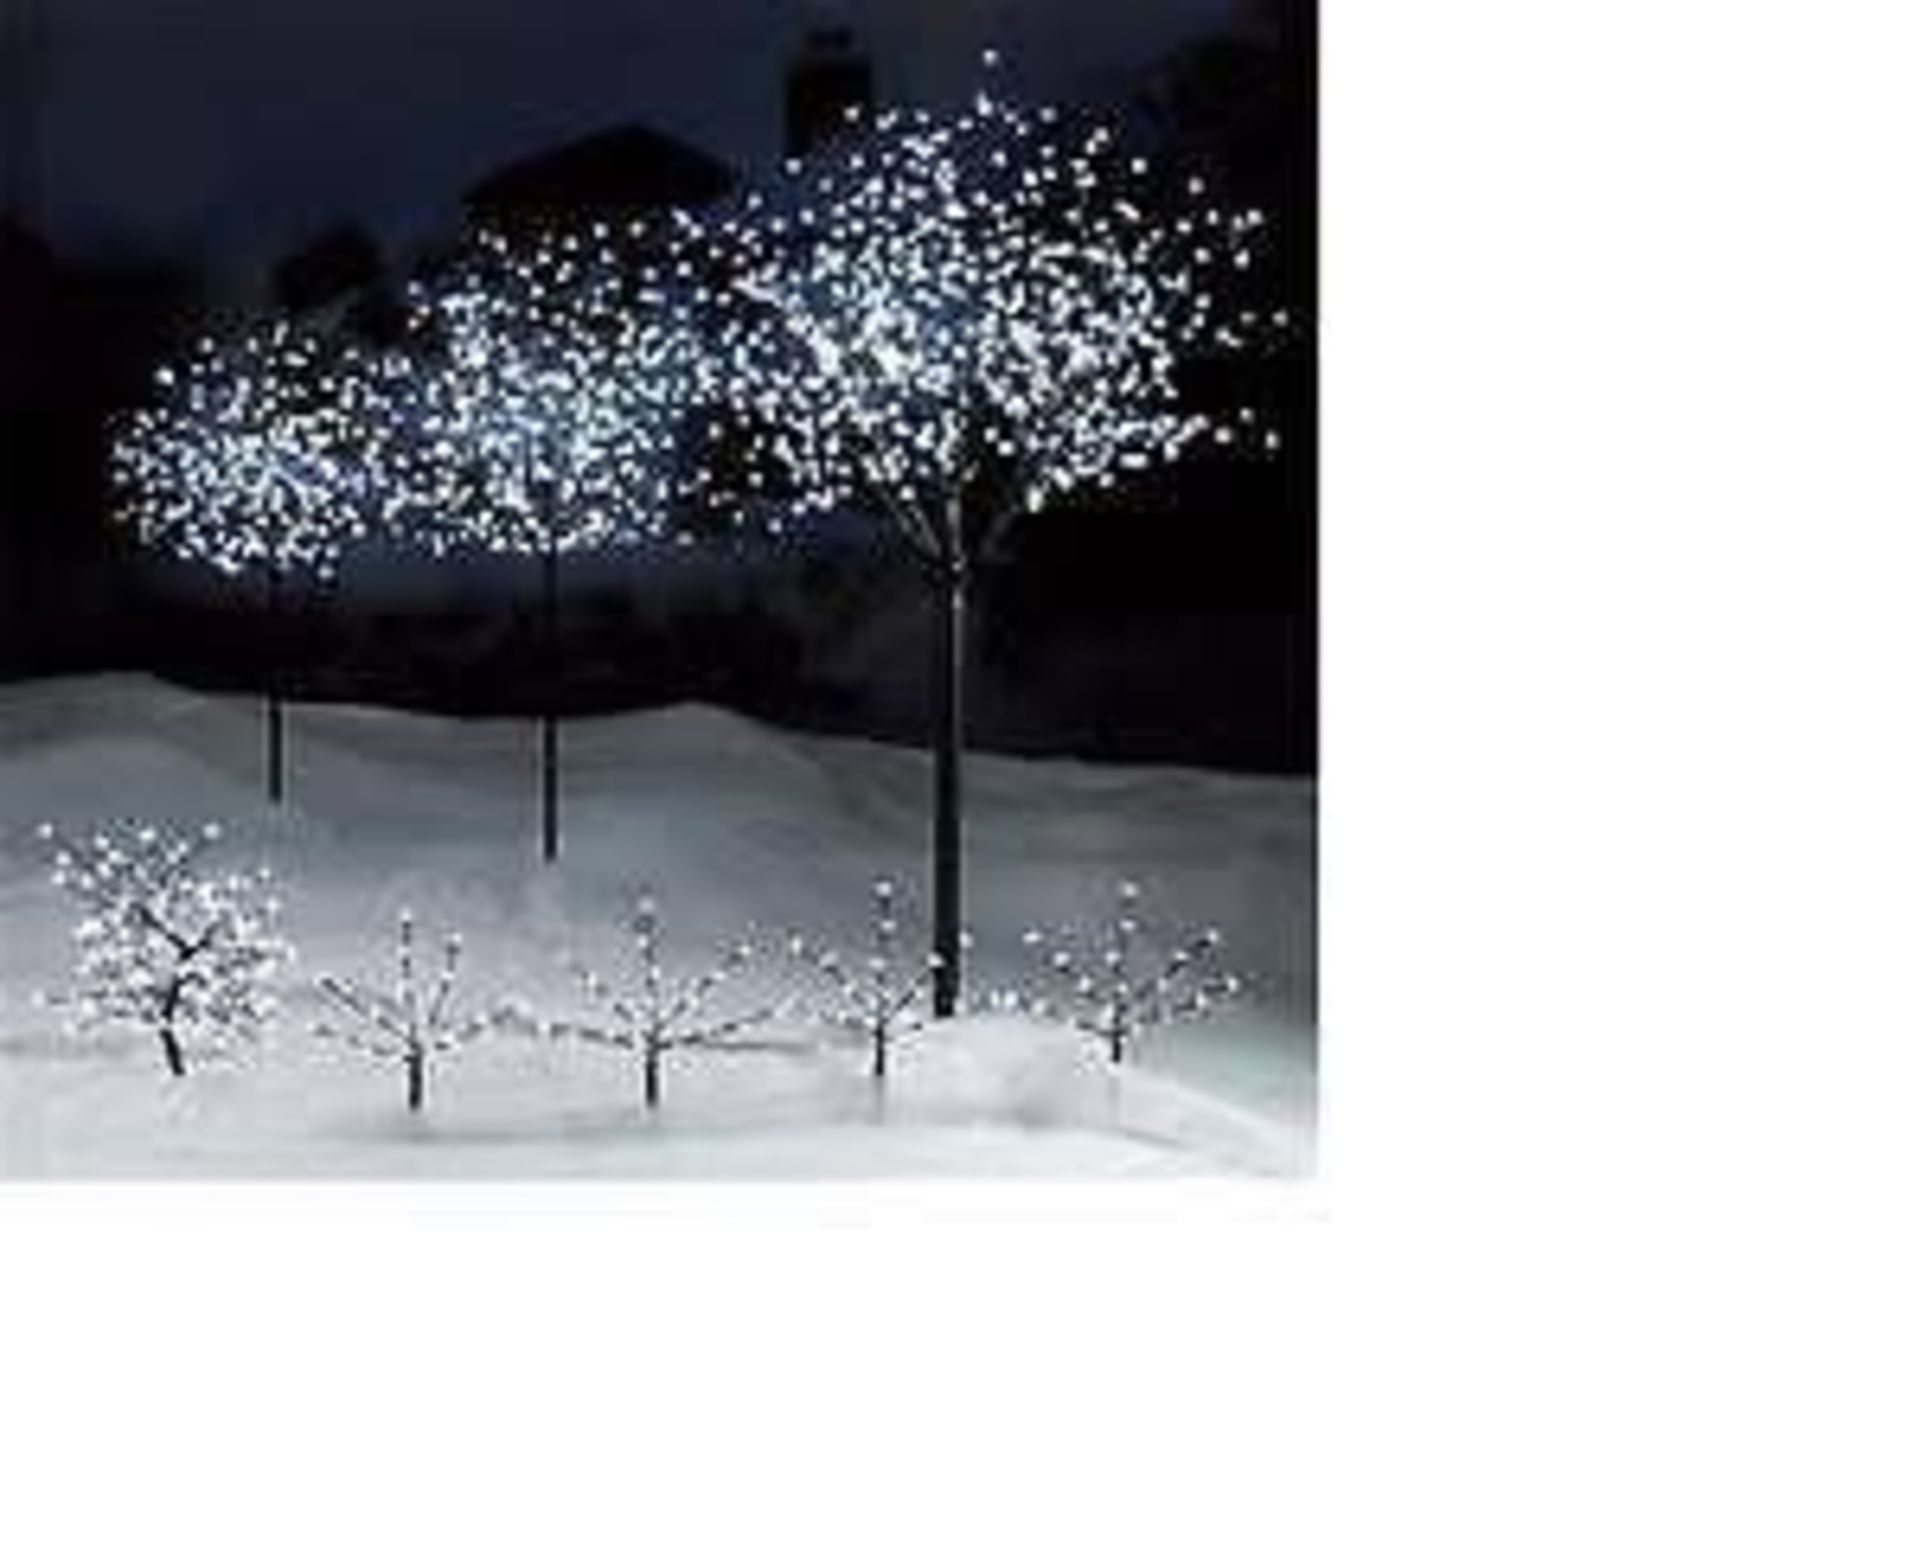 Lot 11959 - V Brand New 150cm Snow White LED Blossom Tree For Indoor And Outdoor Use RRP £54.99